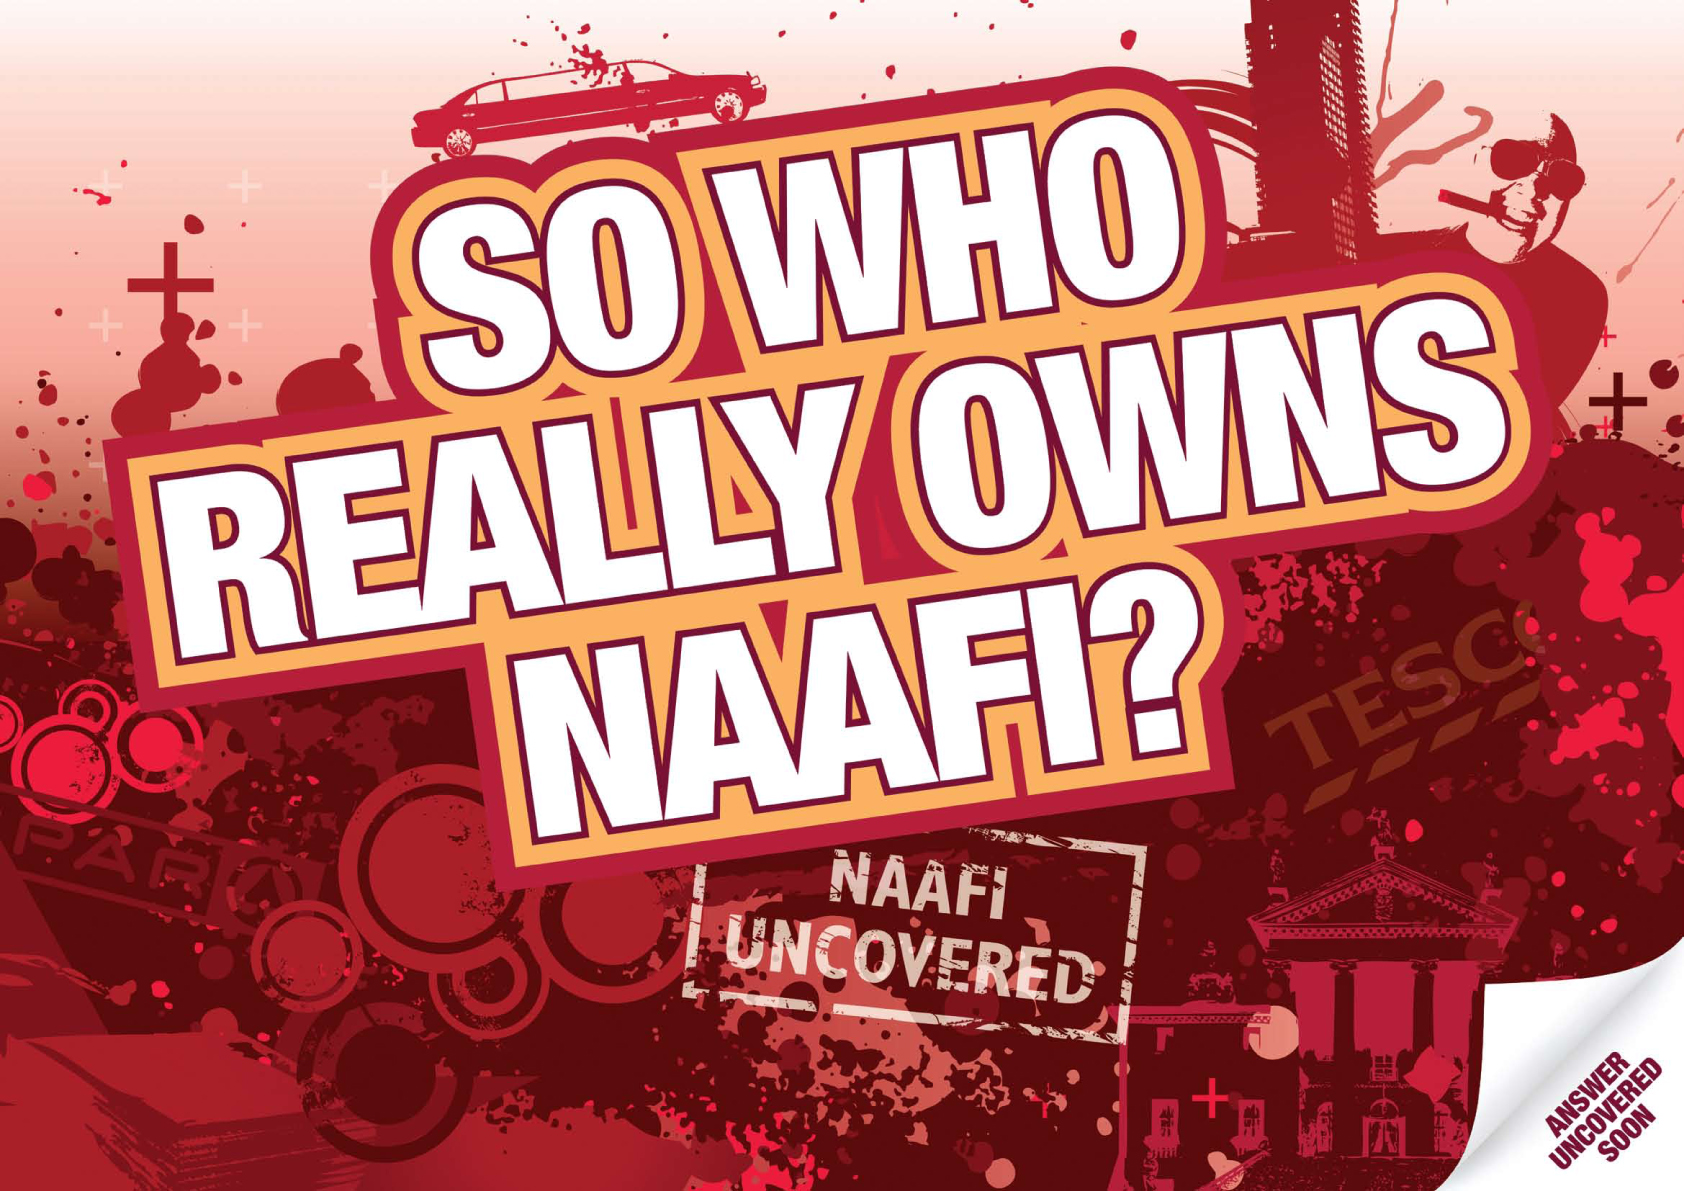 So who really owns NAAFI